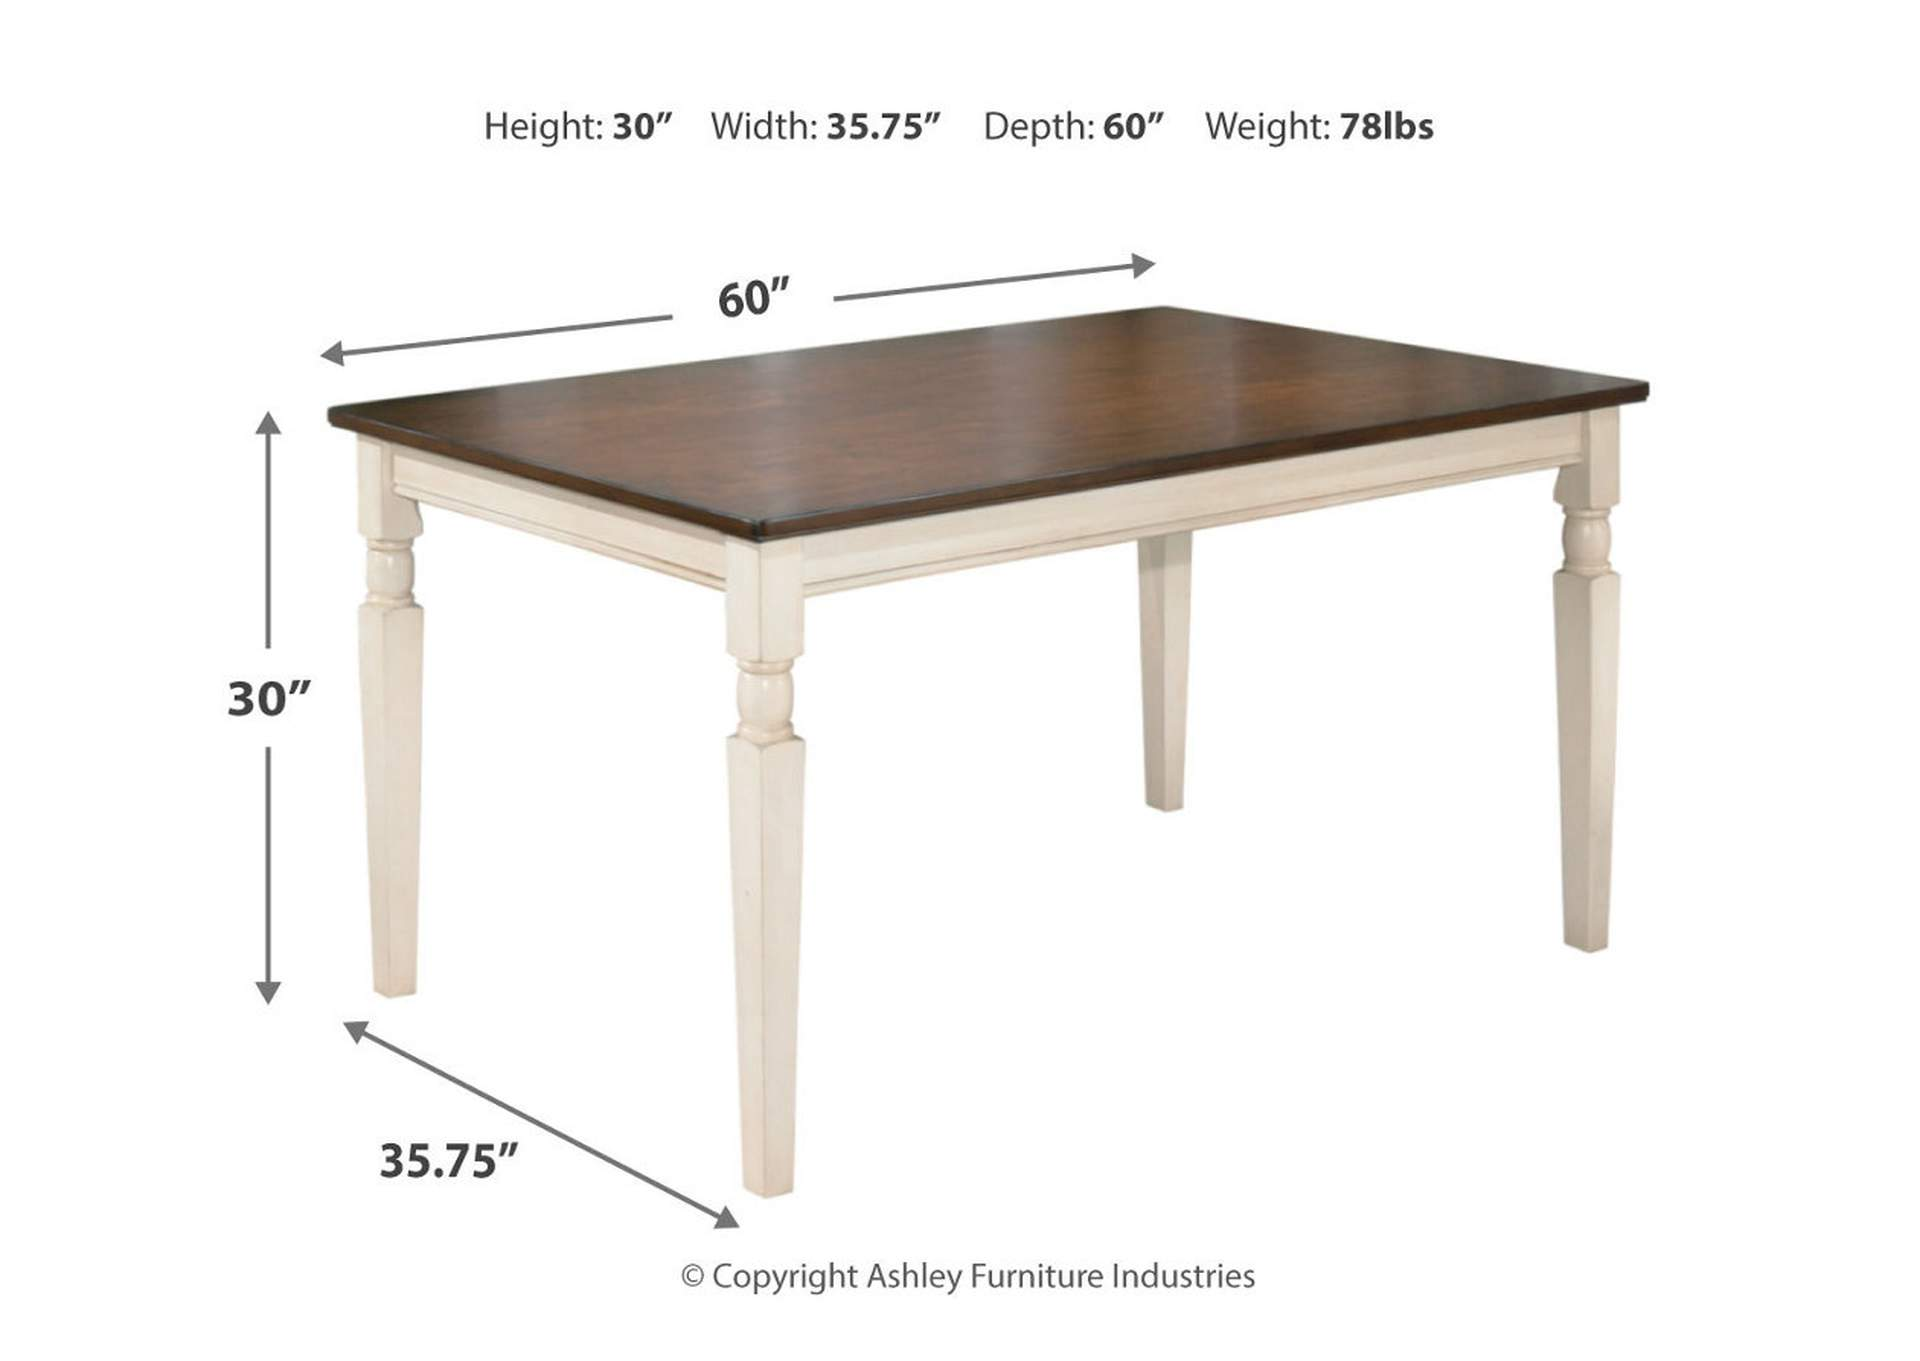 Whitesburg Rectangular Dining Table,Direct To Consumer Express